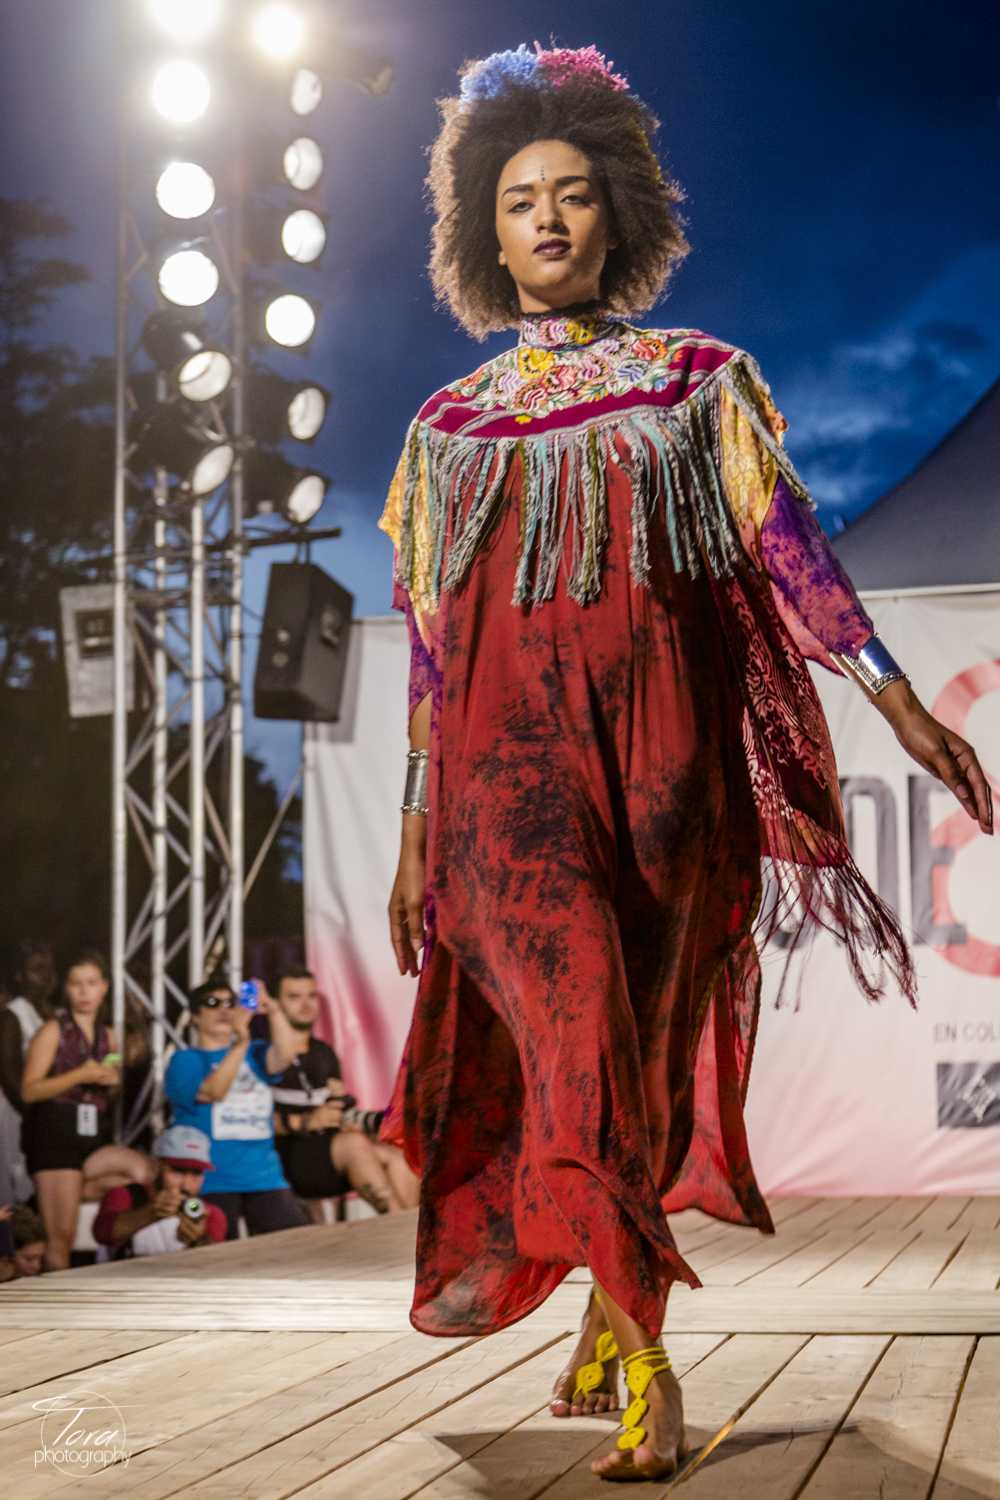 Tora Photography - Festival Mode et Design Montreal -183.jpg